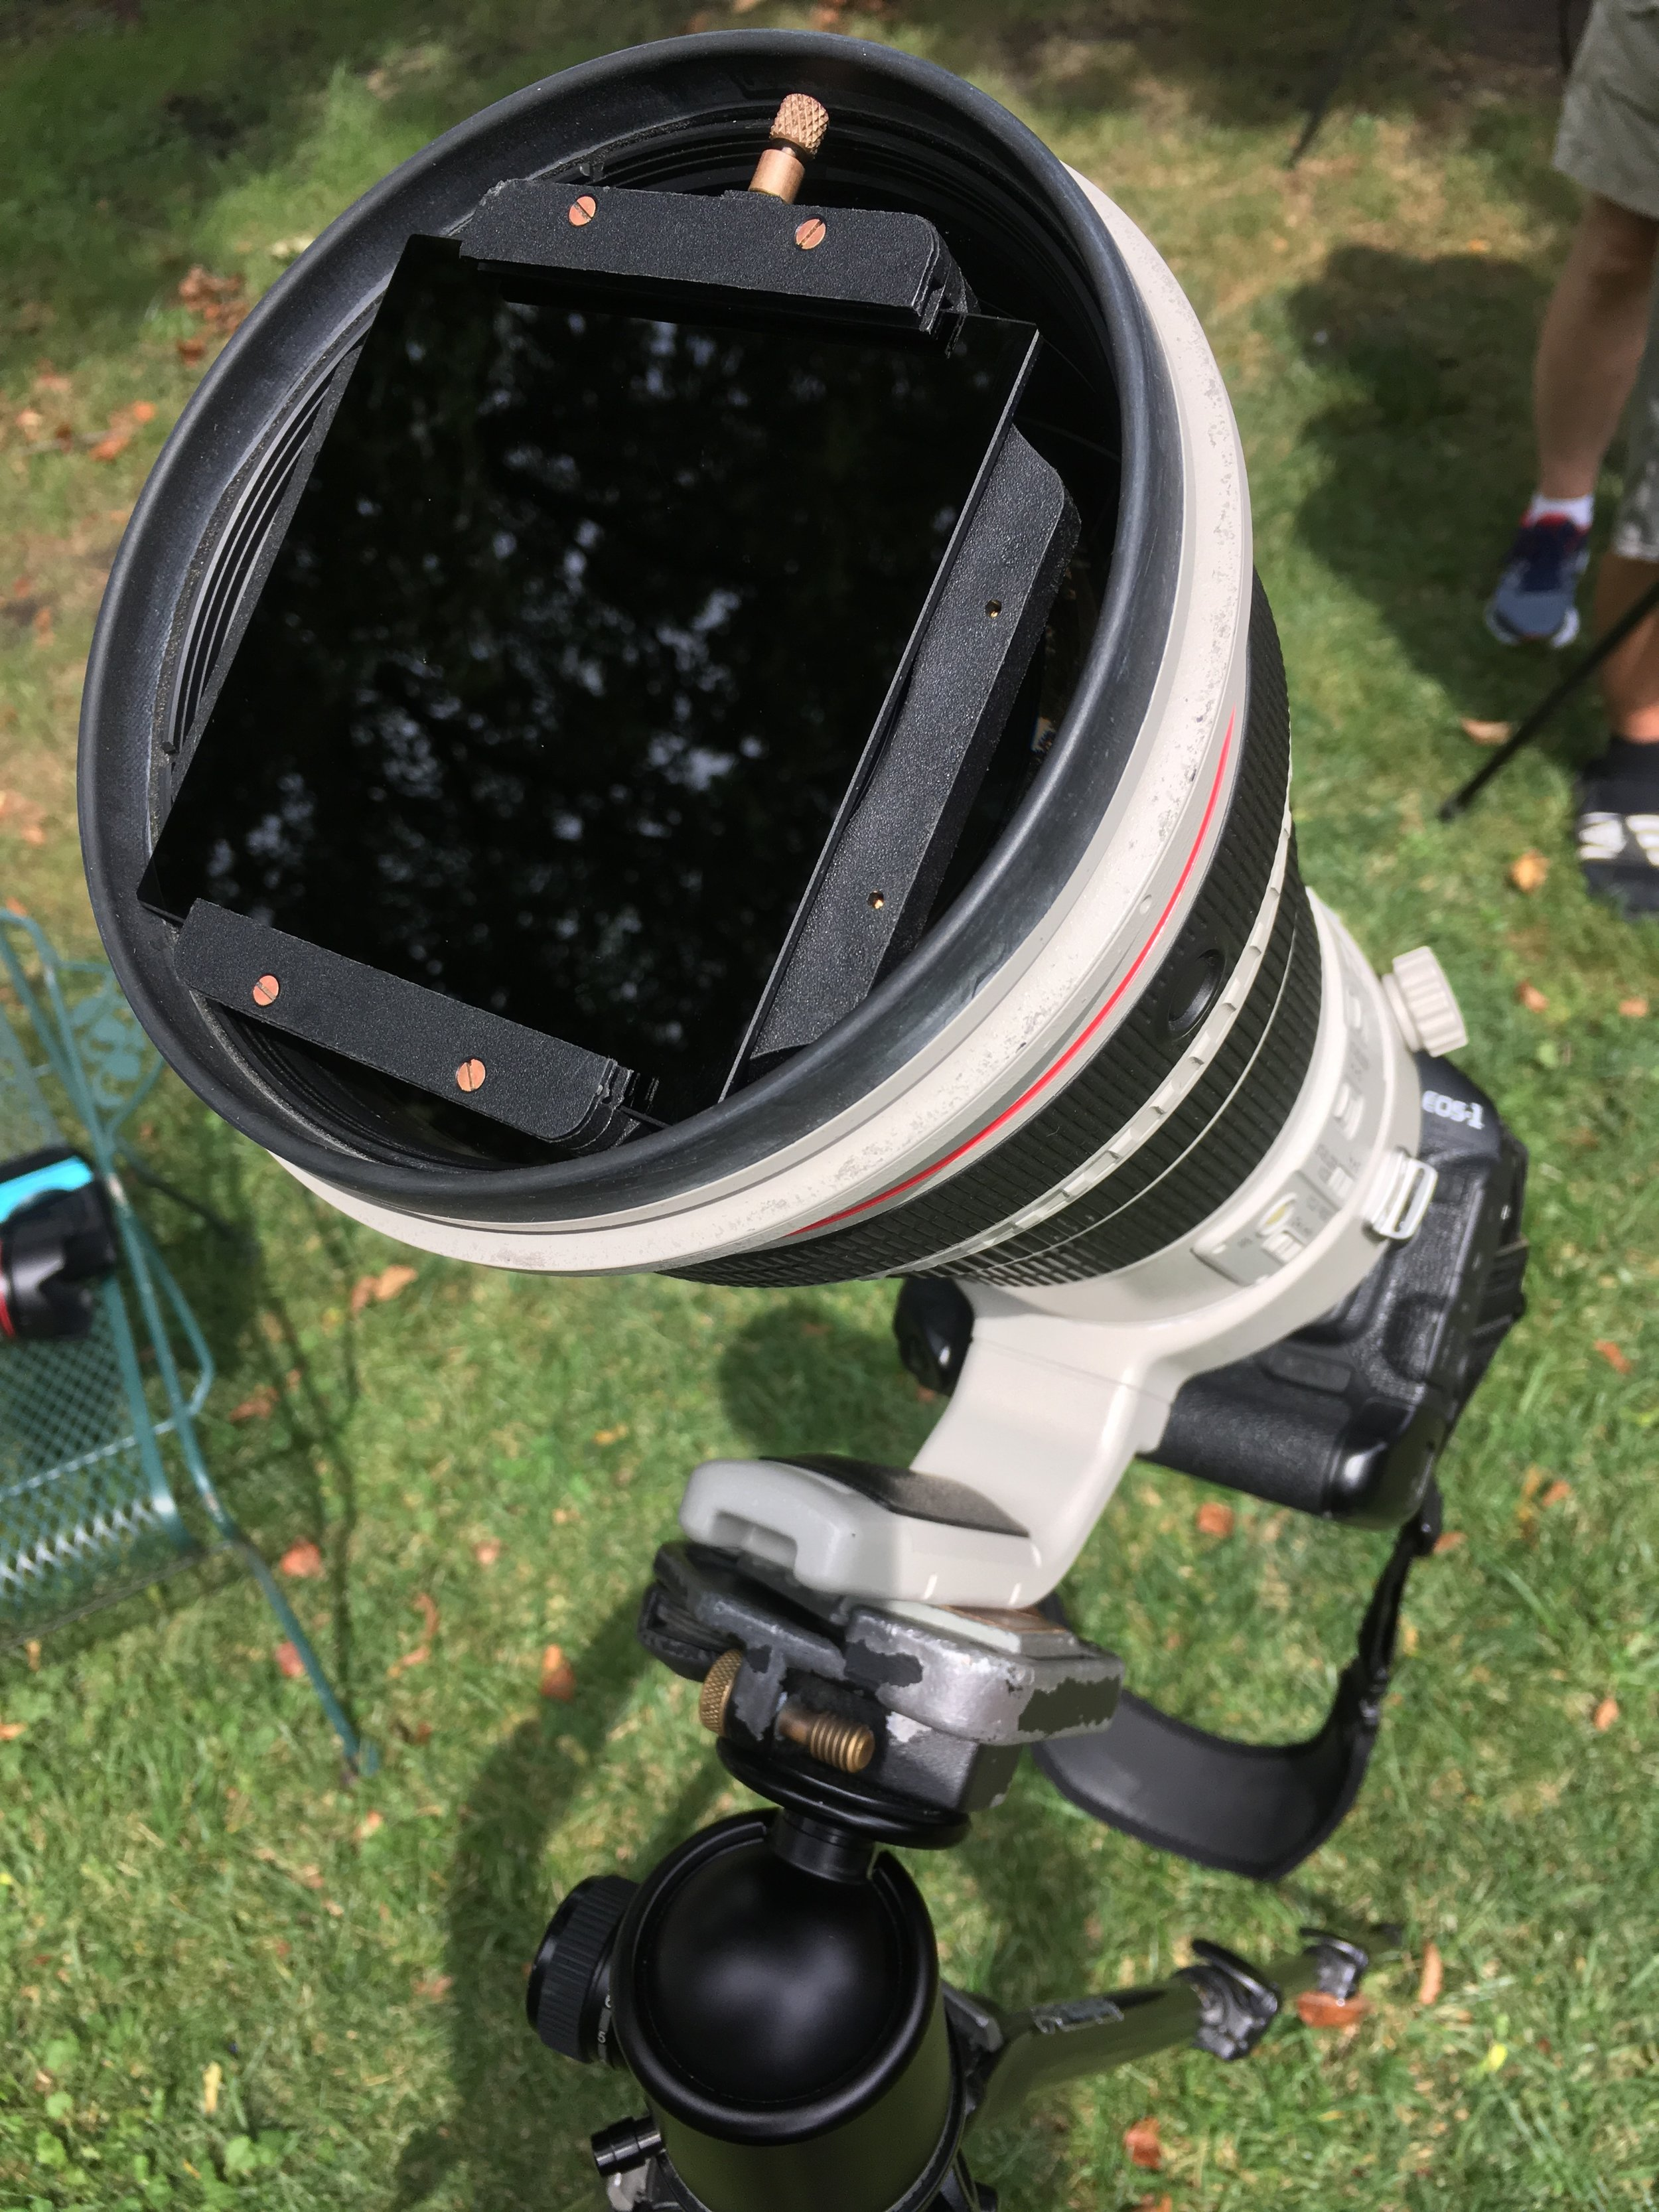 Canon 1DX Mark 2 with a 400mm f/2.8 super telephoto lens, photographing a solar eclipse